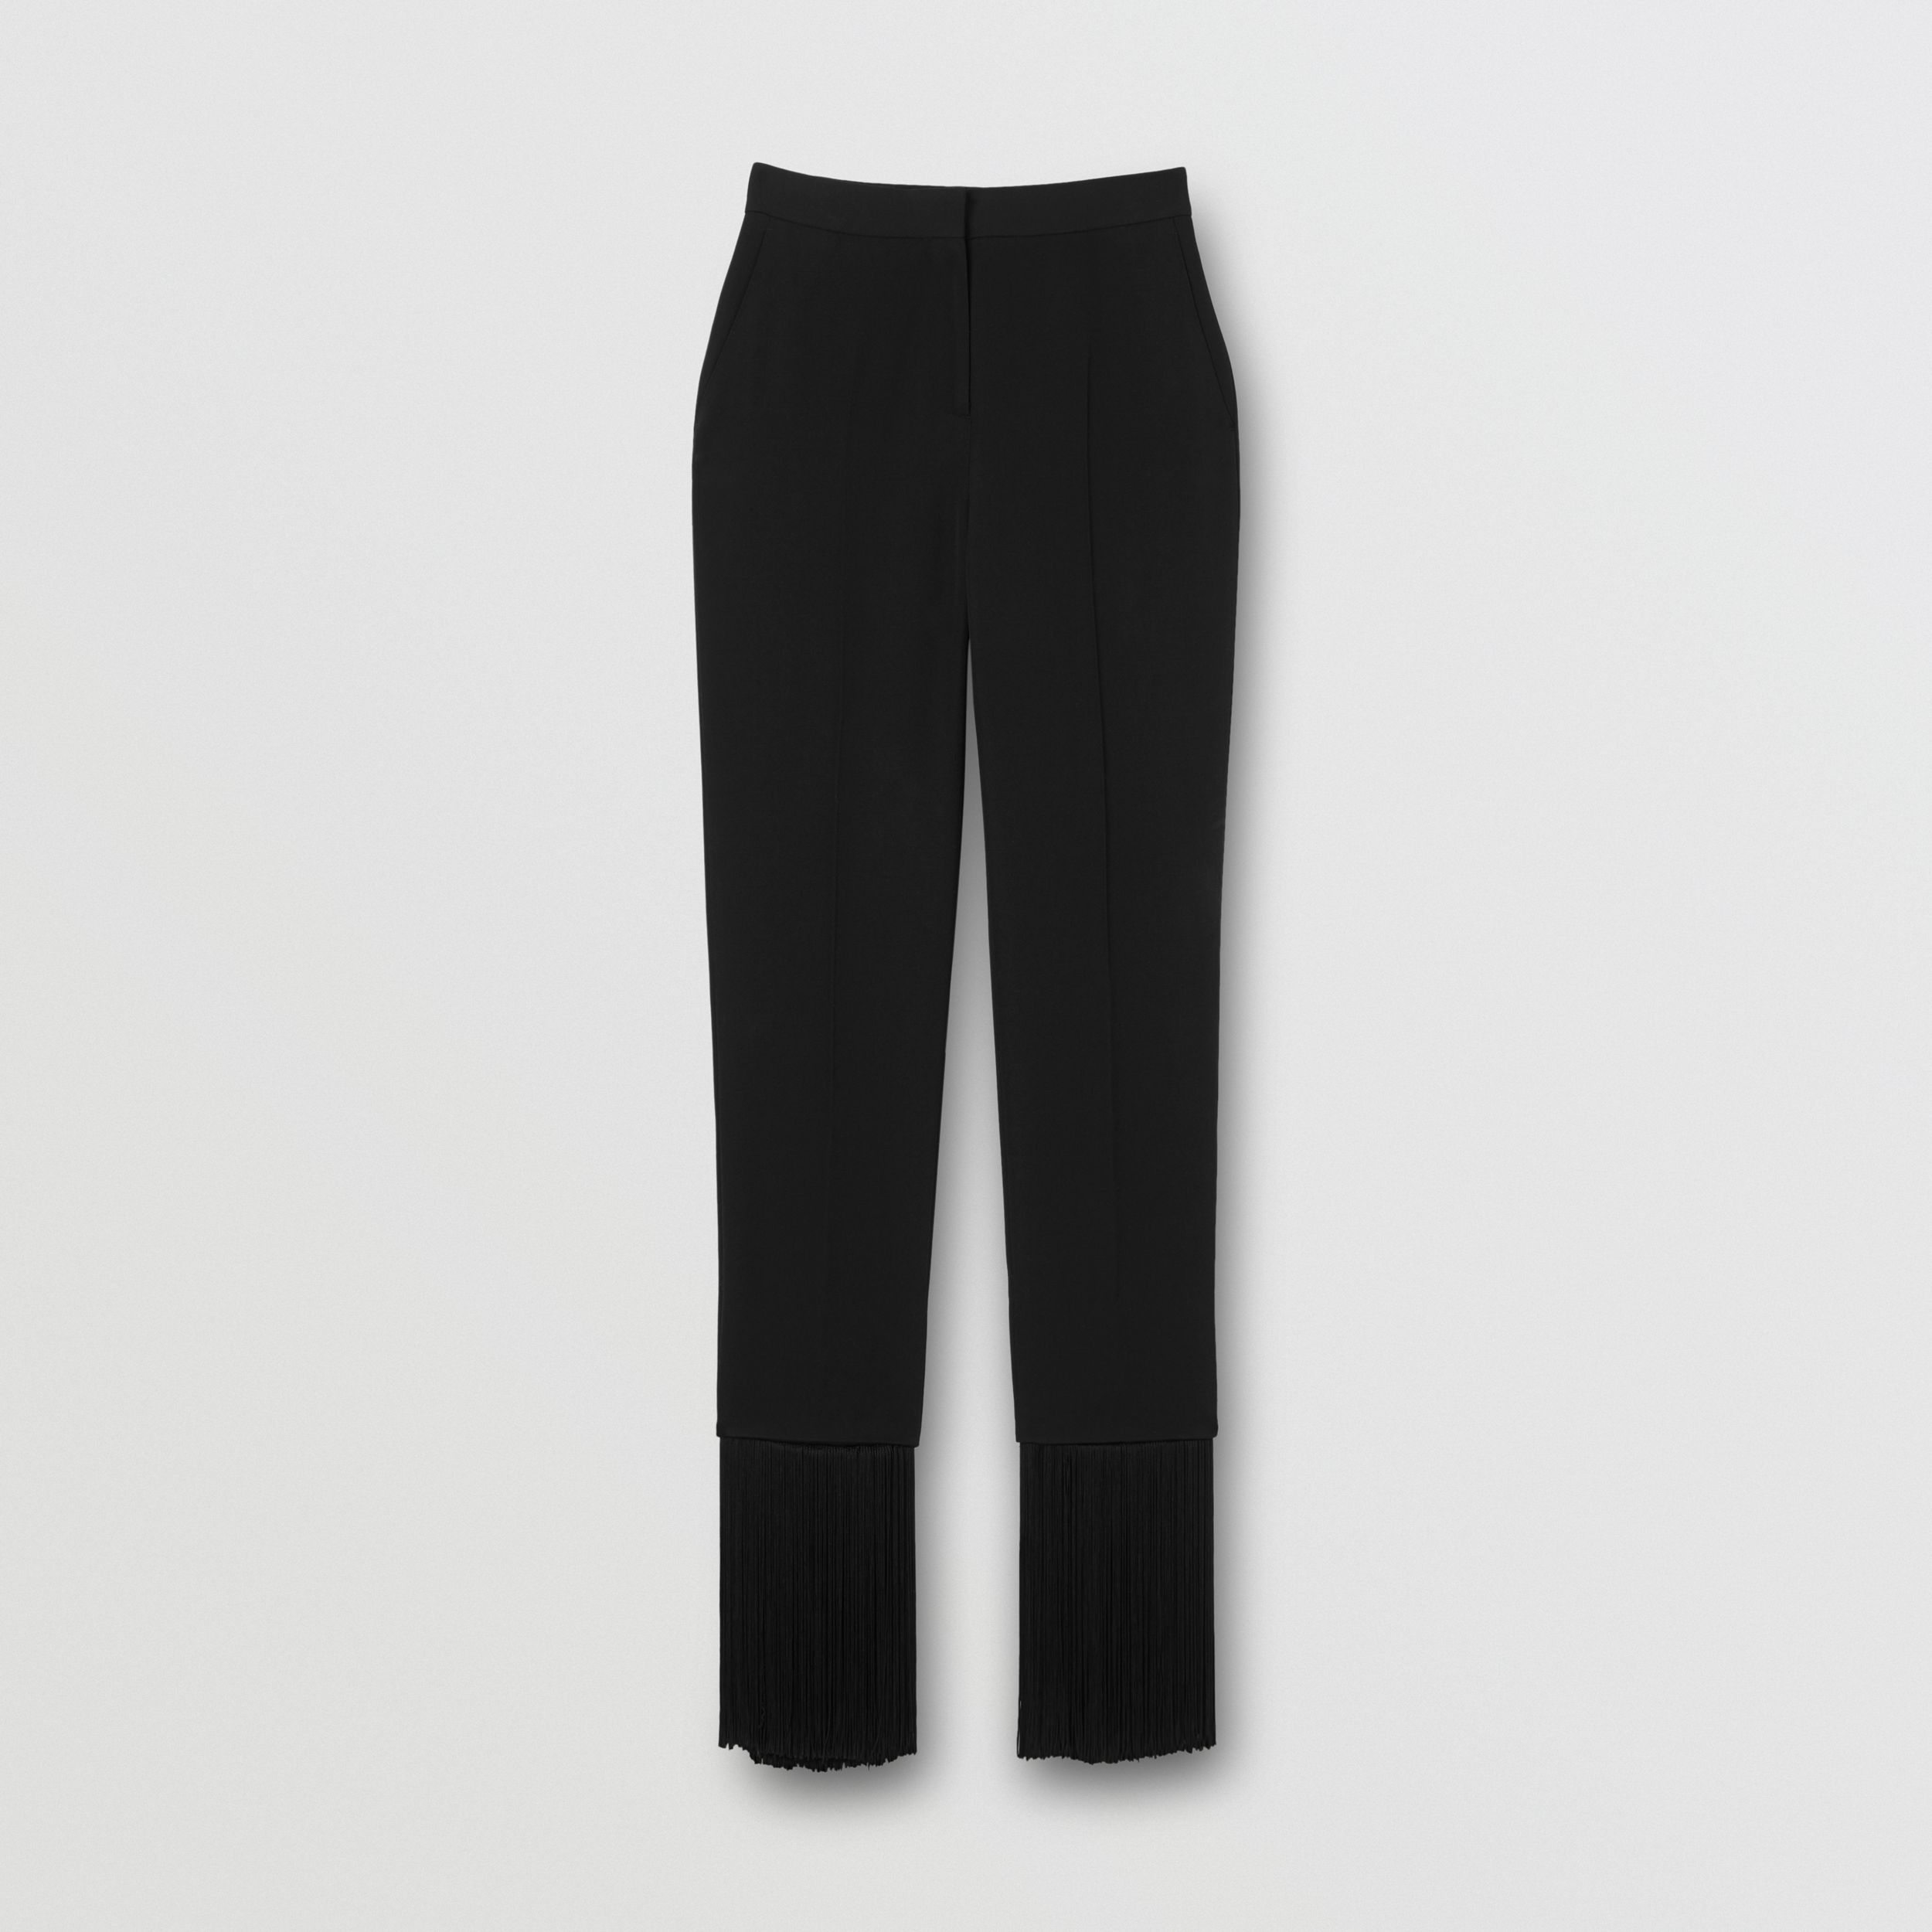 Fringed Grain De Poudre Wool Tailored Trousers in Black - Women | Burberry - 4